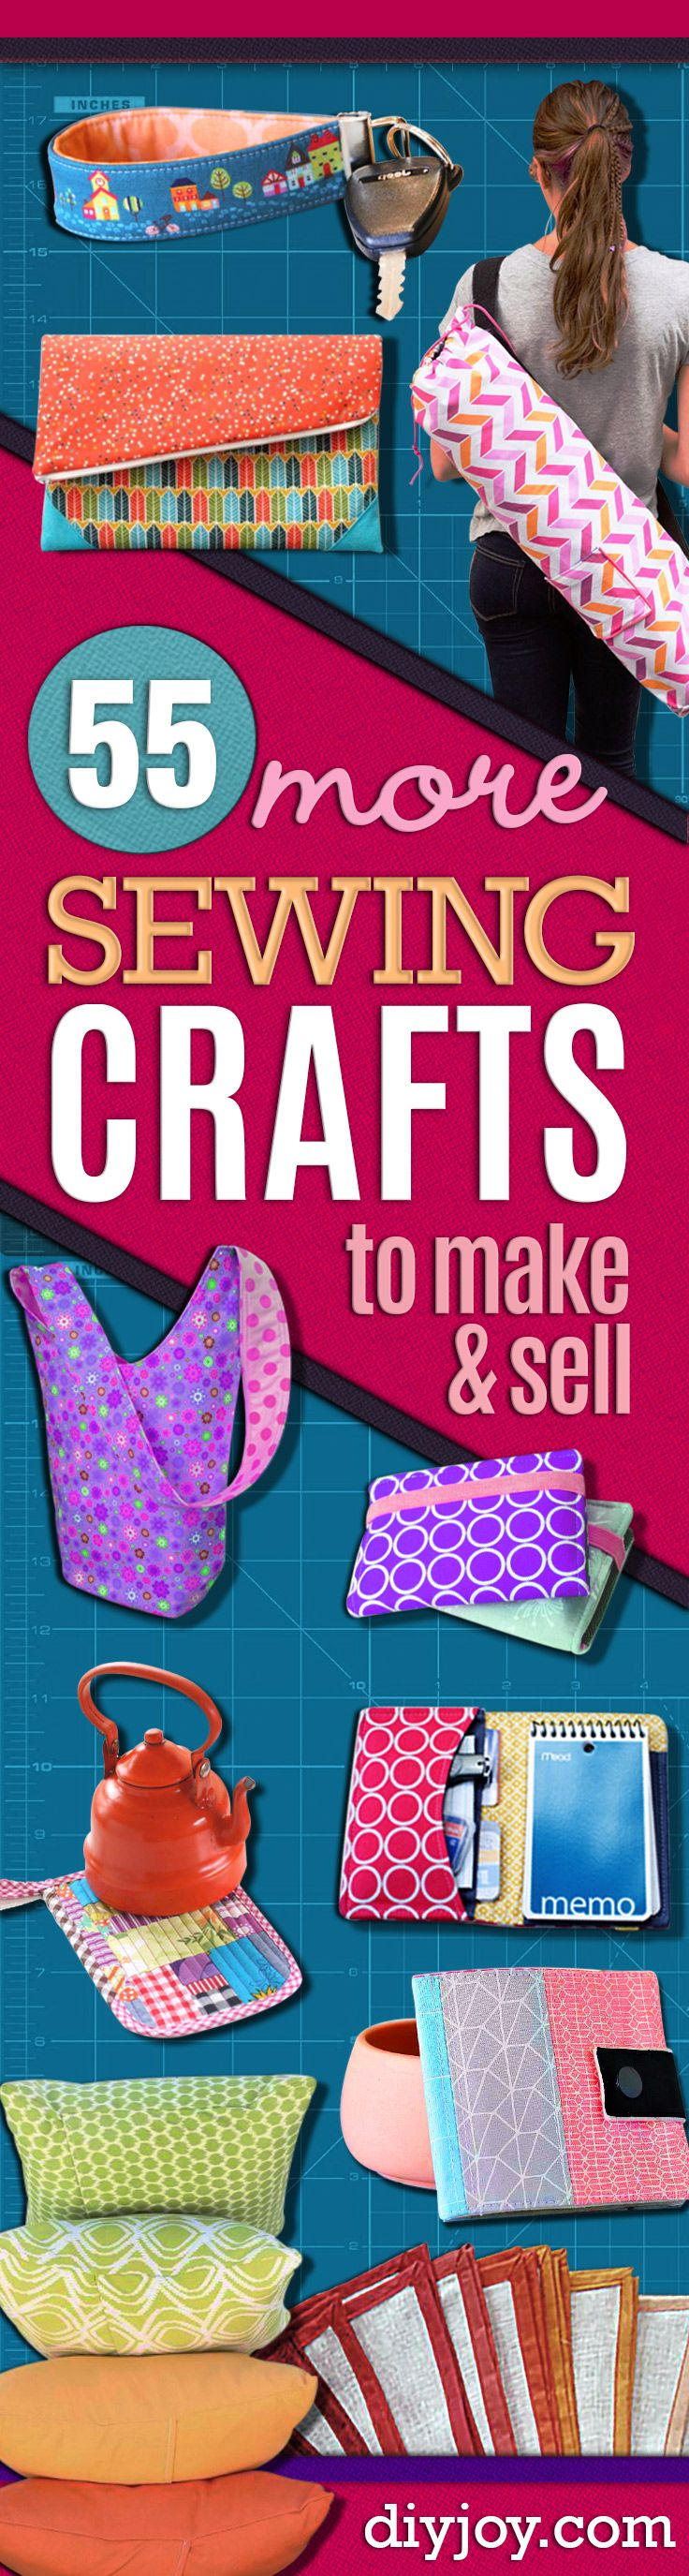 1000 images about small sewing projects on pinterest for Cute diys to sell